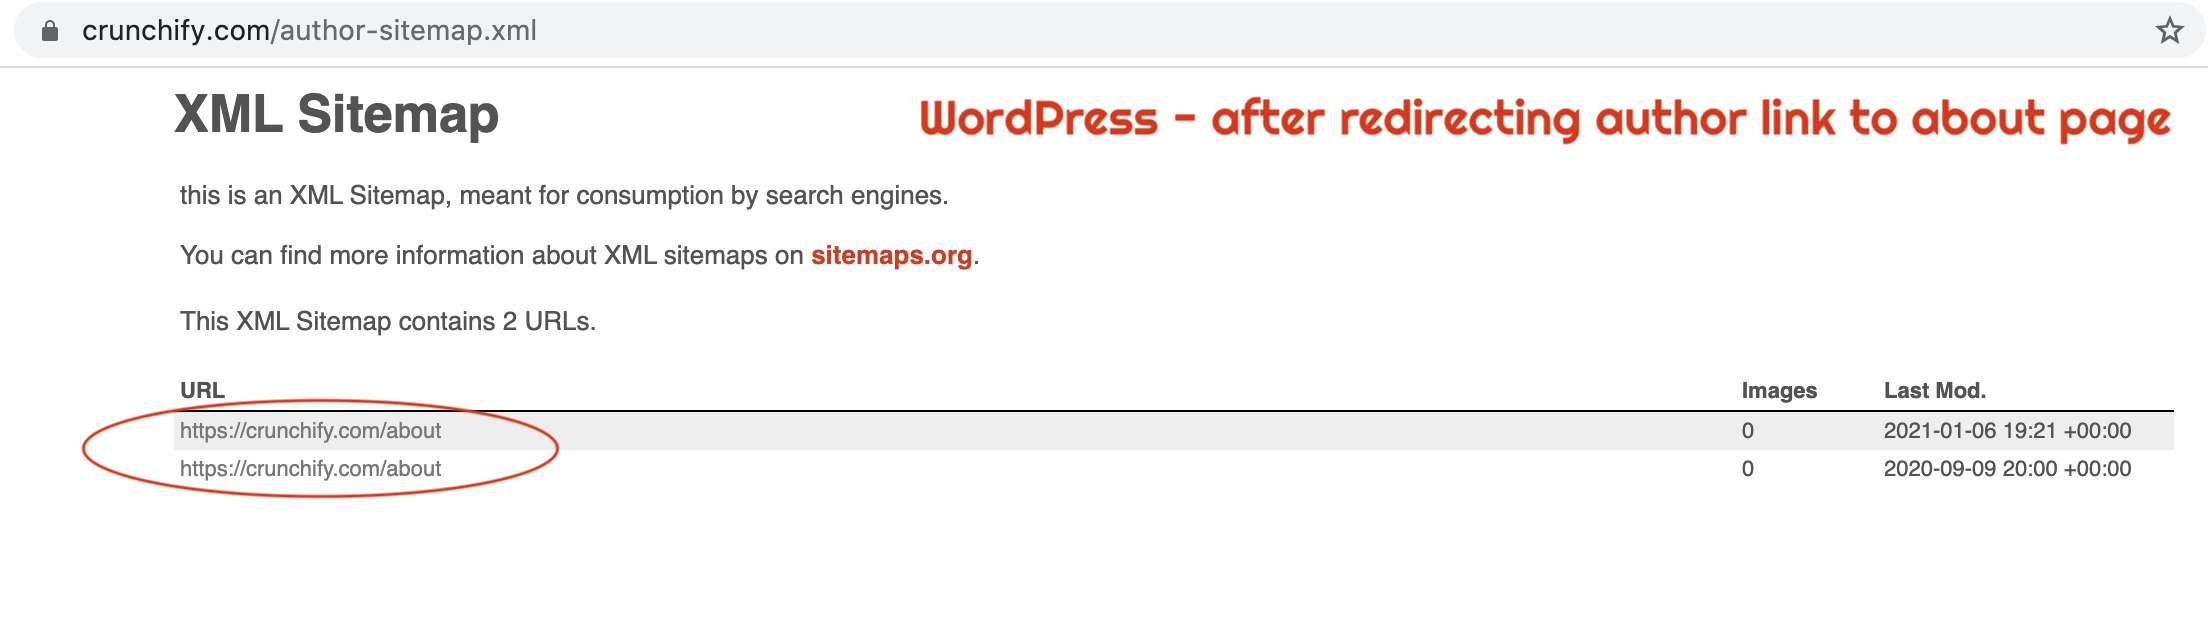 WordPress - after redirecting author link to about page